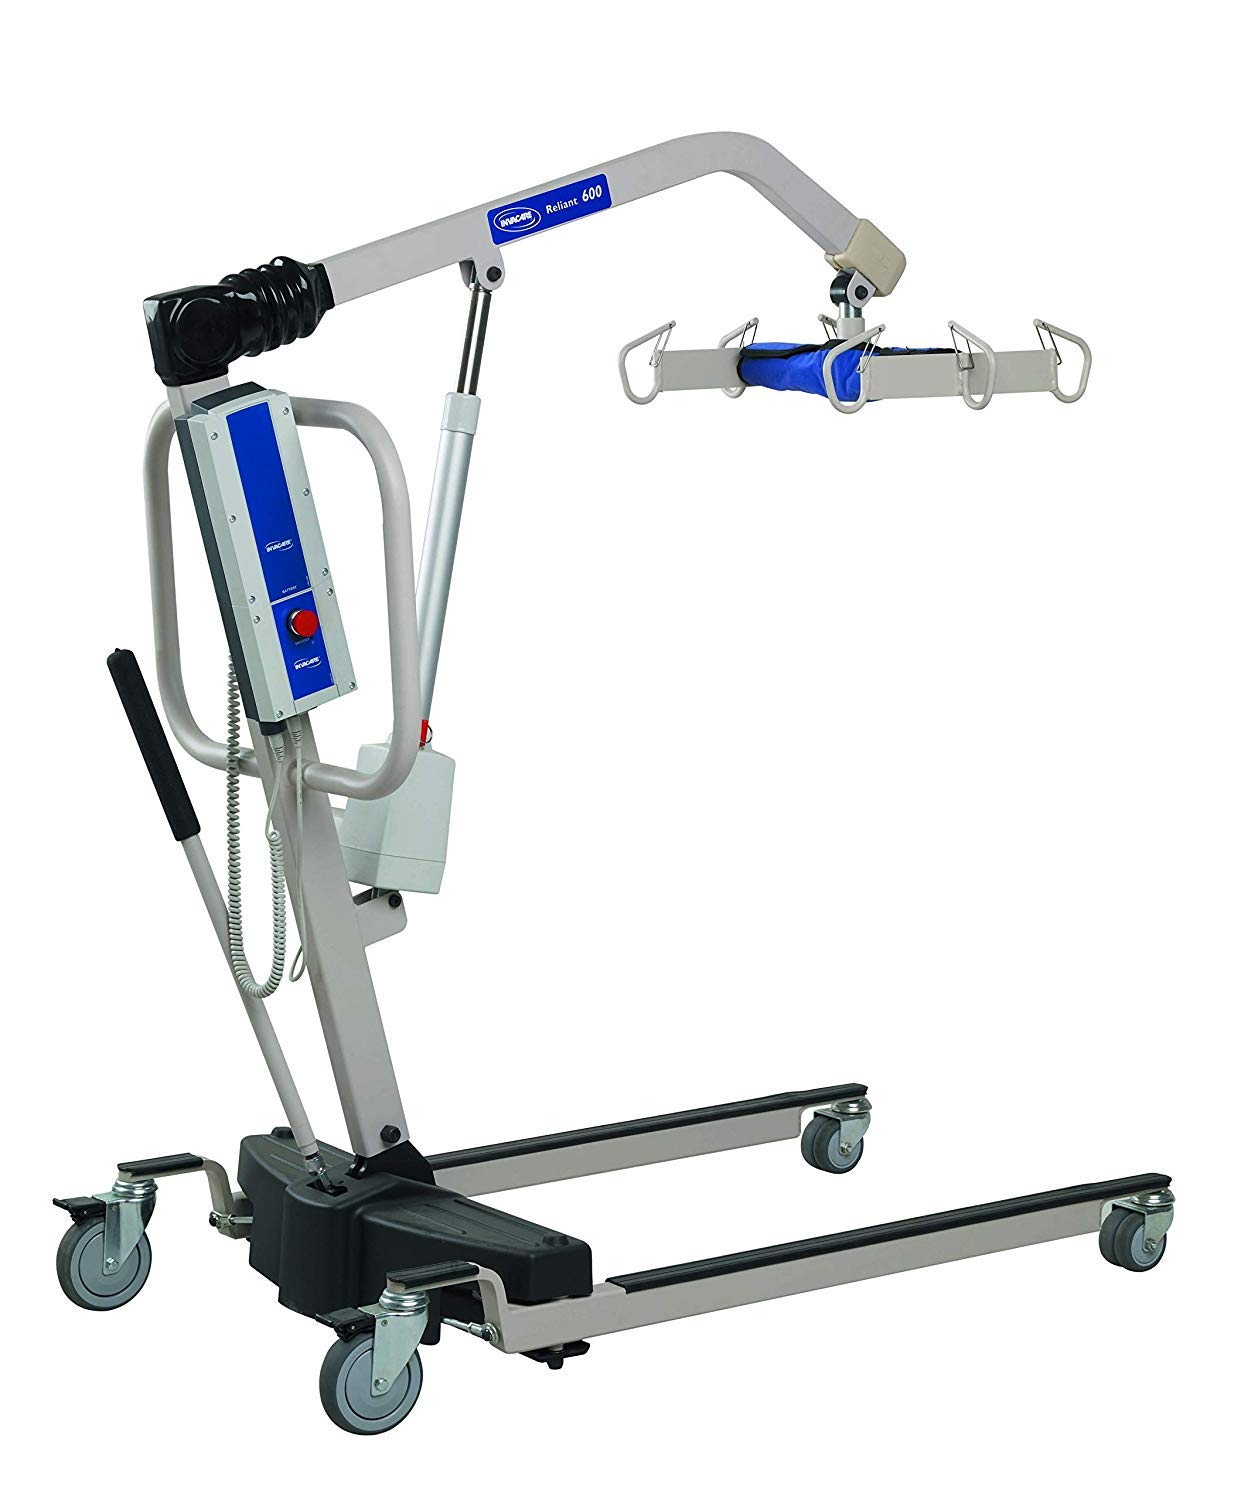 image of Invacare Reliant hoyer lift